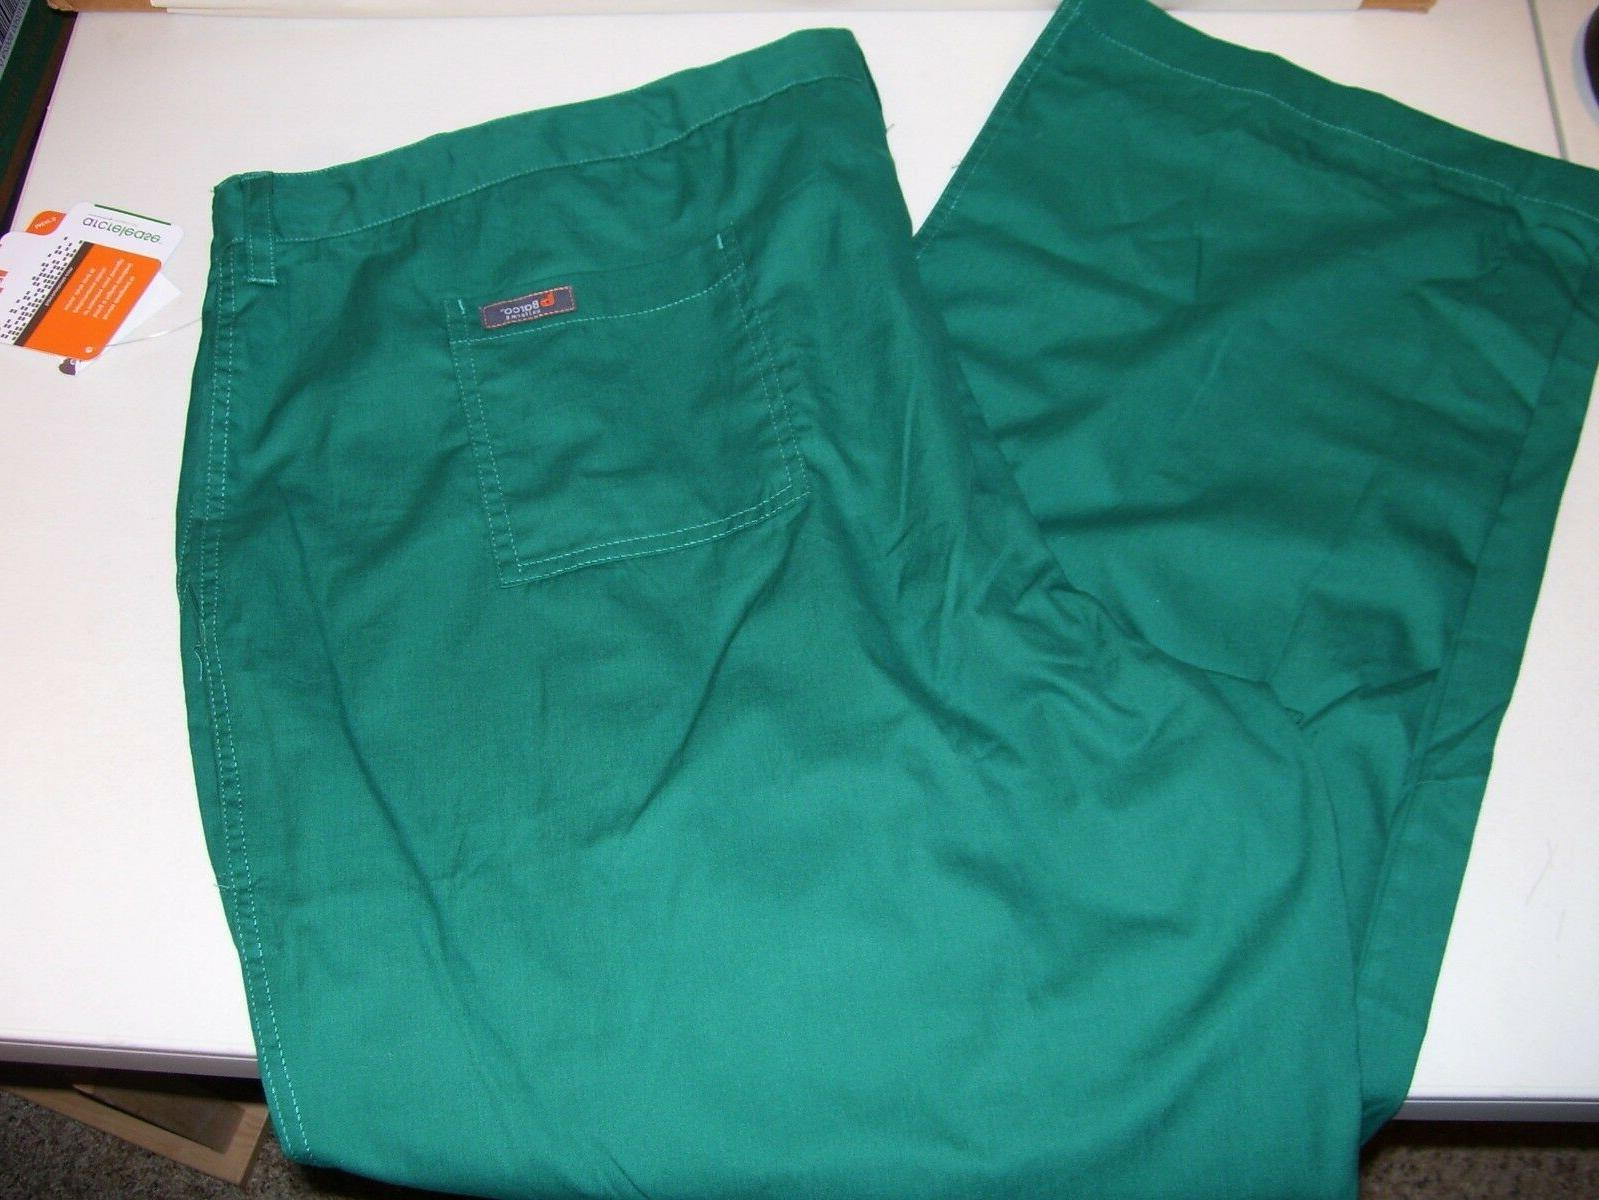 NEW MEN'S BARCO SCRUB PANTS SIZE 3XL HUNTER GREEN PANT